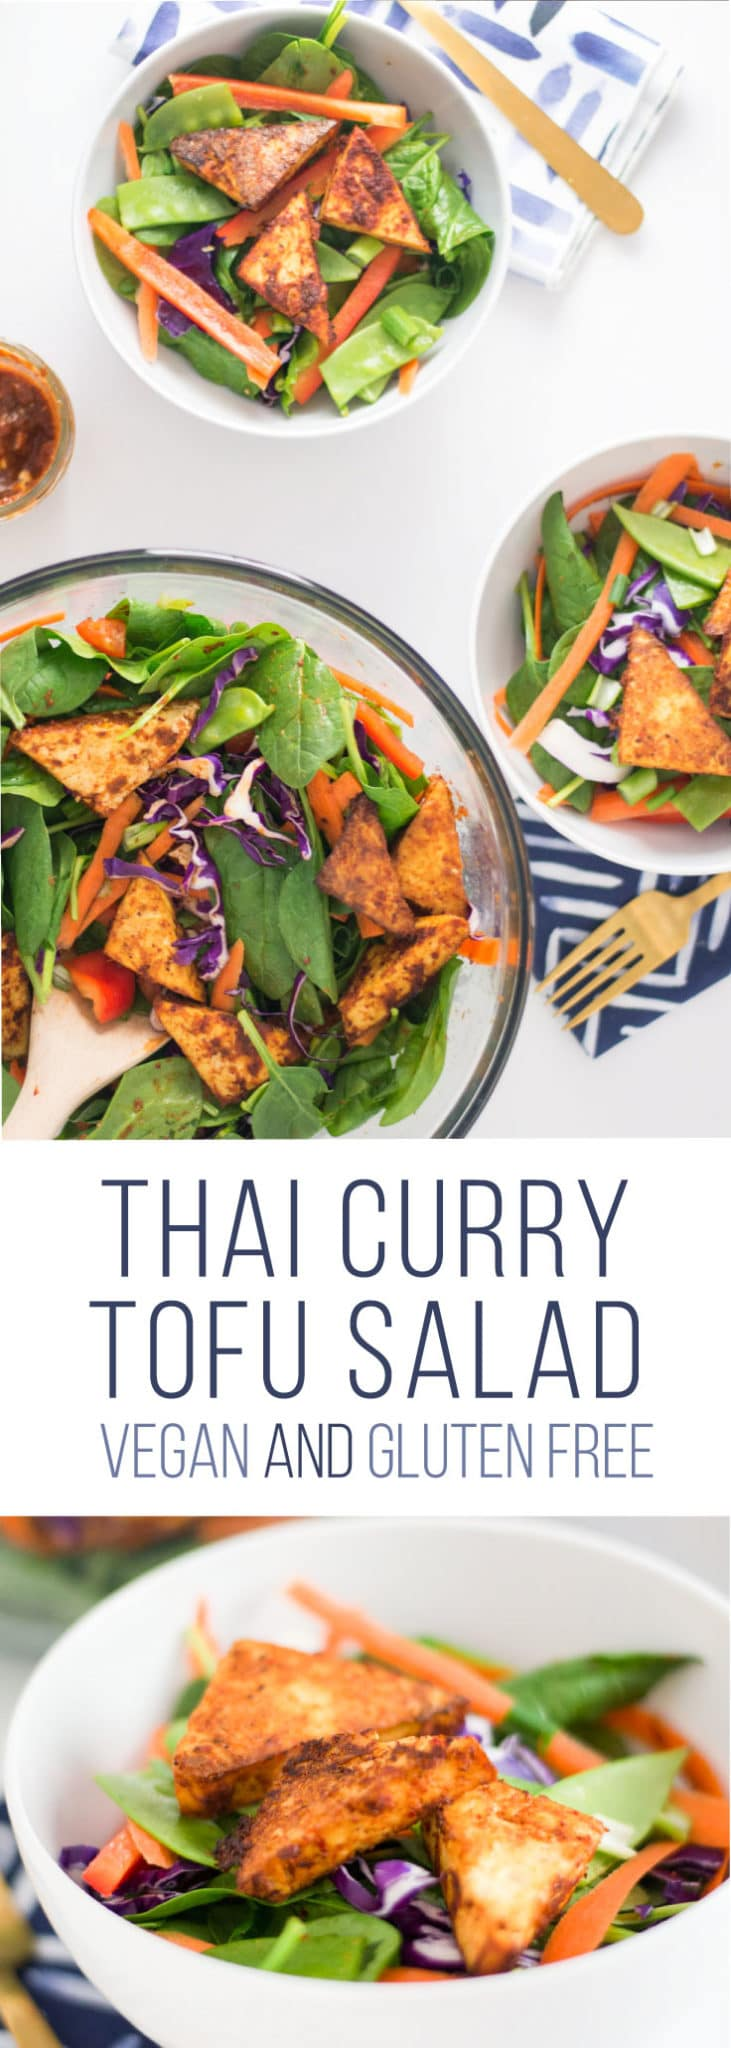 Thai Salad with Red Curry Tofu -- This Thai-inspired tofu has the perfect amount of spice and it so easy to make. A salad packed with veggies and topped with plant-based protein, this healthy recipe is perfect for lunch! Try this salad for filling vegan and gluten-free meal. #cleaneating #healthy #vegan #vegetarian #salad #thaifood | mindfulavocado